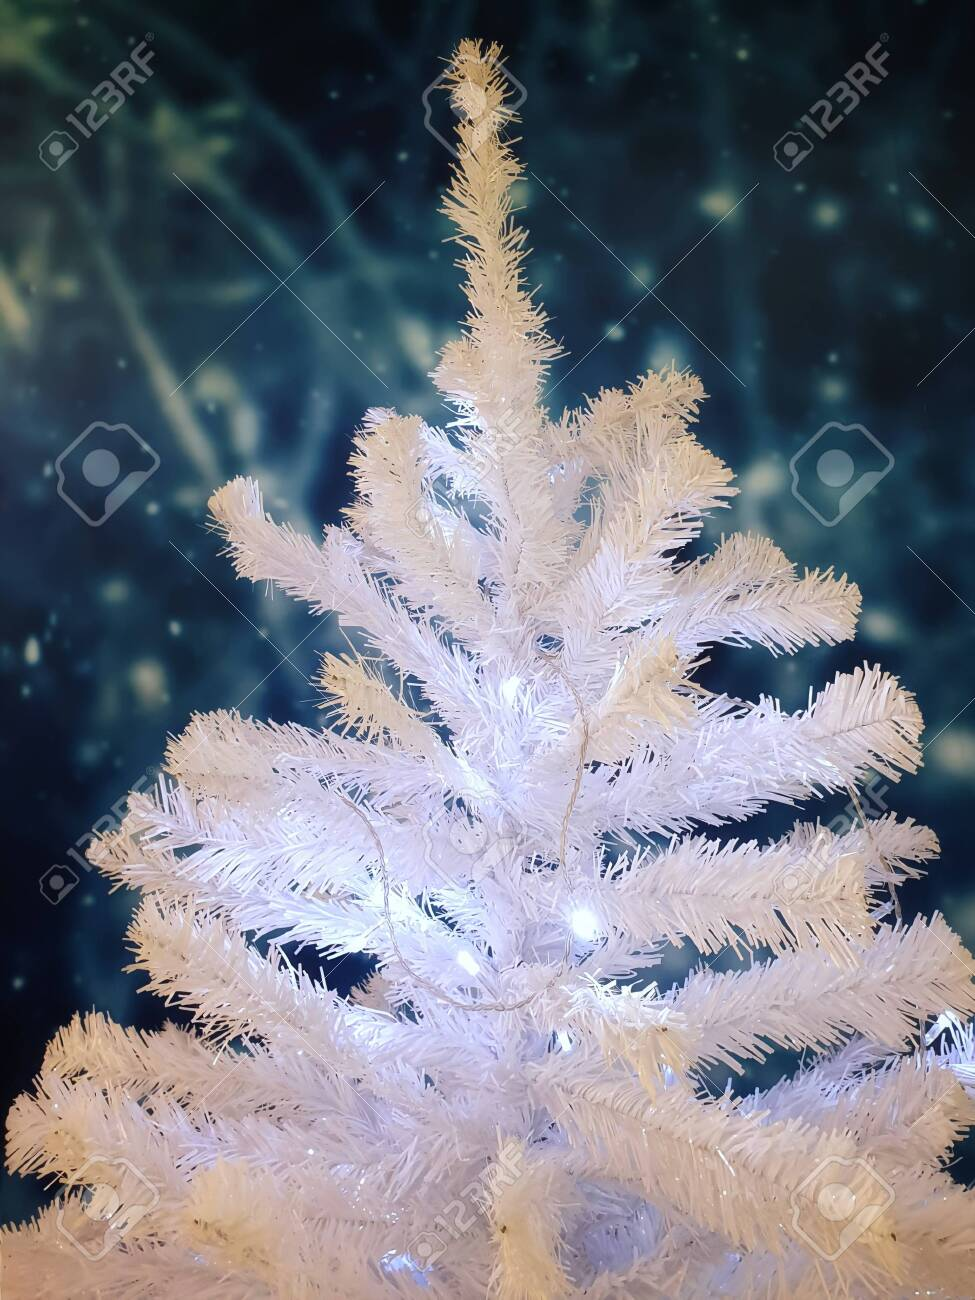 135408793 white christmas tree decorated with lights celebrate the festival with copy space garland background